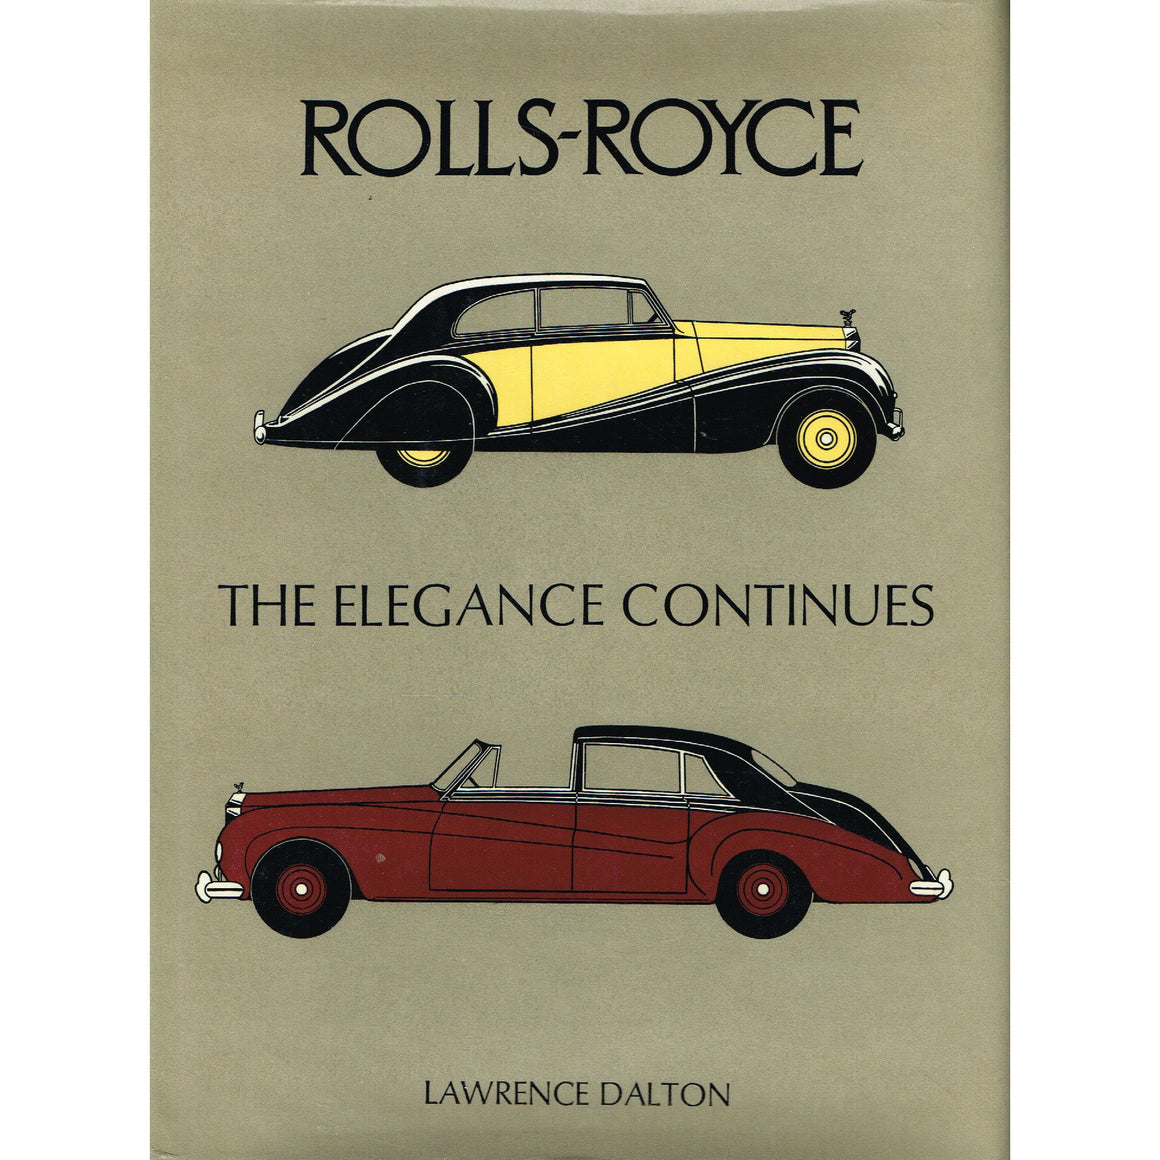 Rolls-Royce: The Elegance Continues